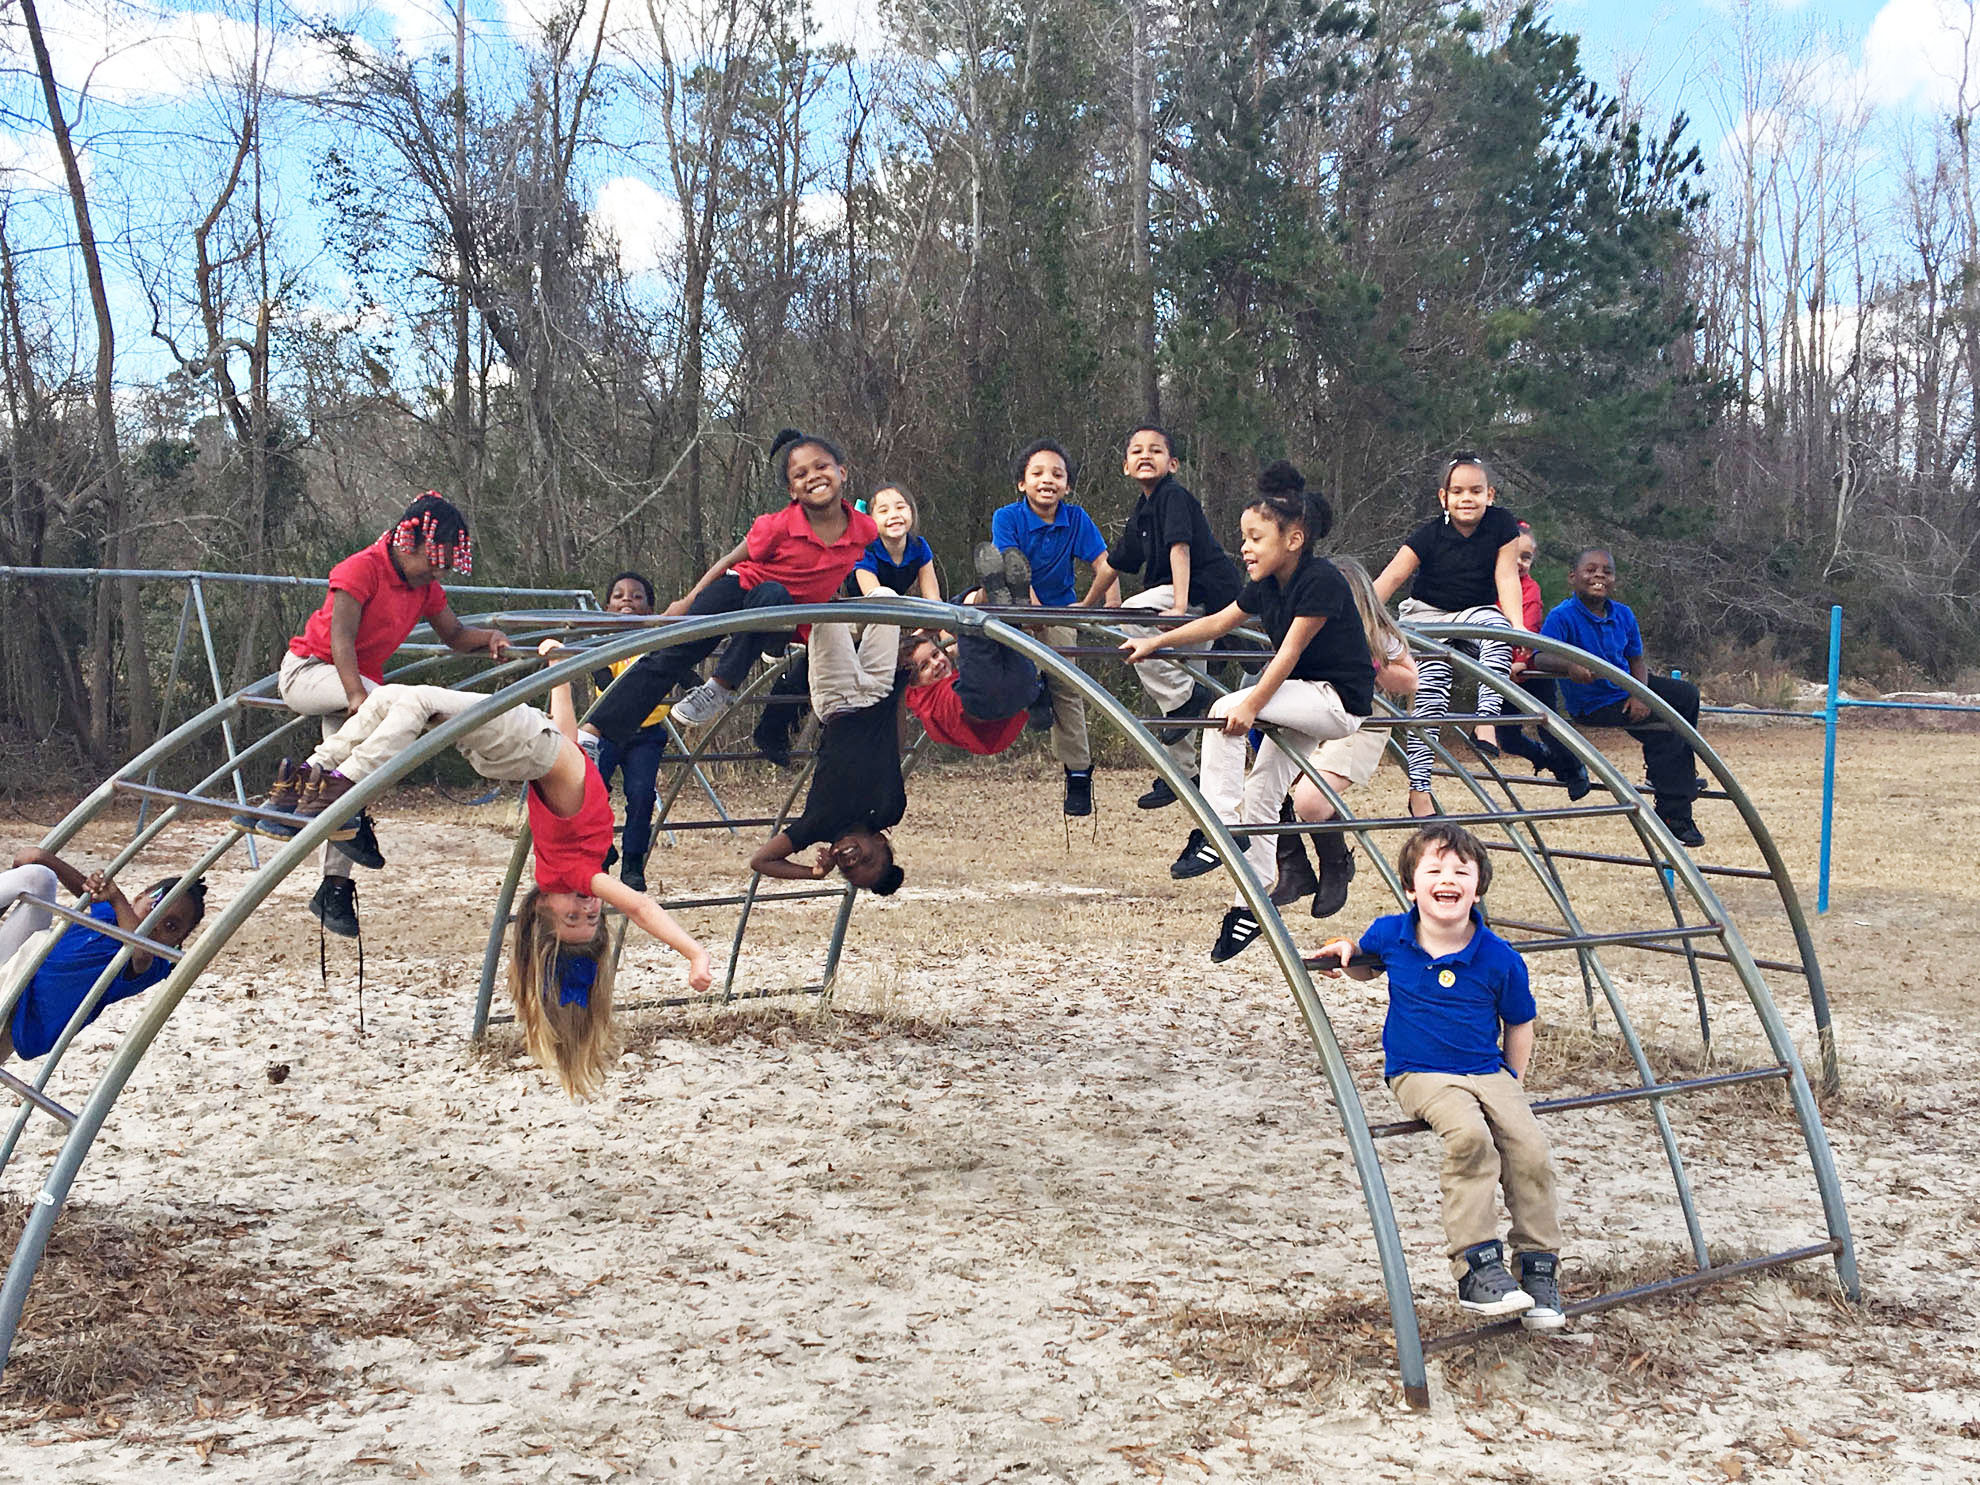 Rebecca Owens' kindergarten class enjoys a sunny day on the playground at Whiteville Primary School